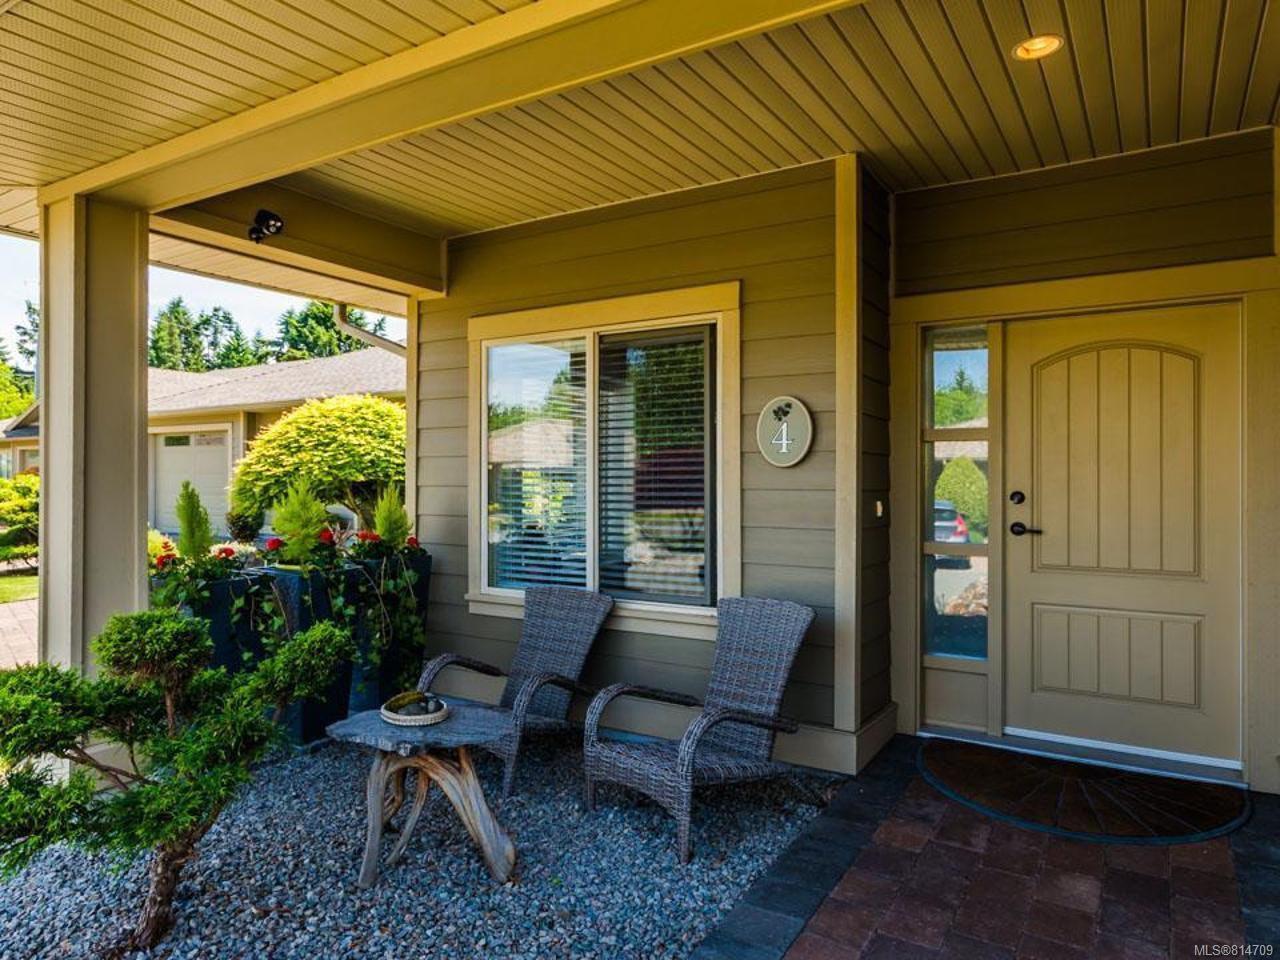 Main Photo: 4 161 Shelly Rd in PARKSVILLE: PQ Parksville Row/Townhouse for sale (Parksville/Qualicum)  : MLS®# 814709